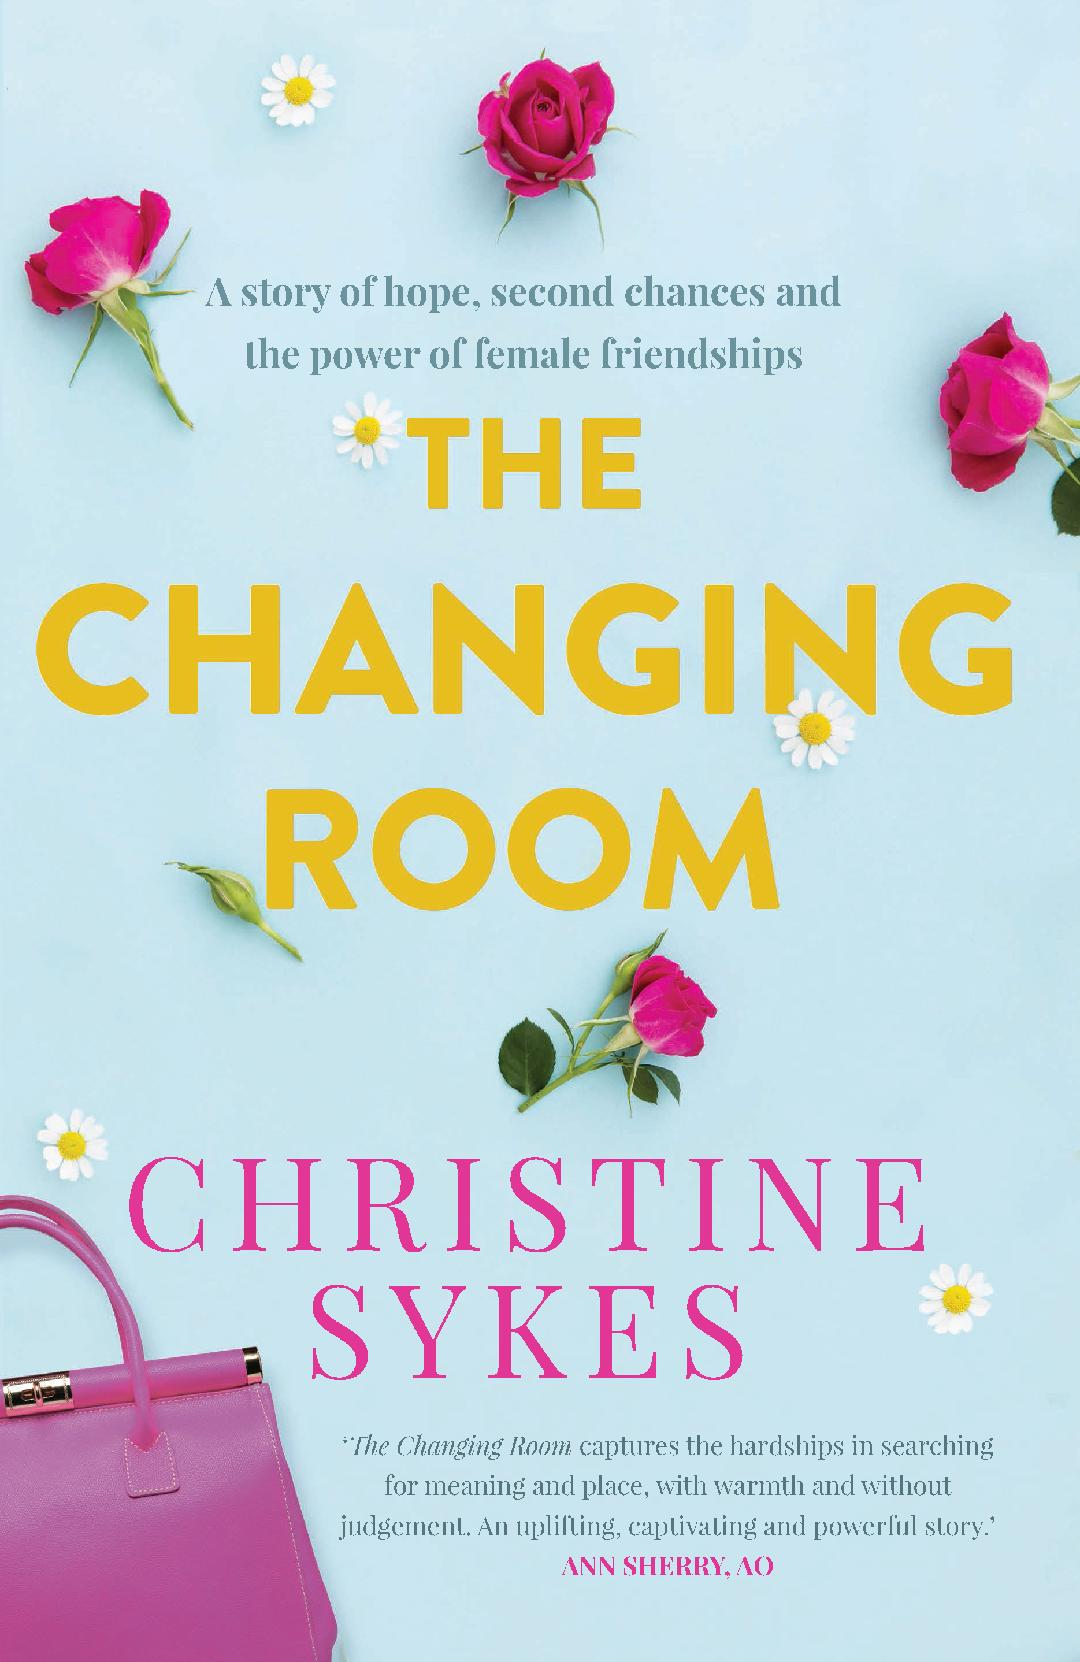 The Changing Room, by Christine Sykes